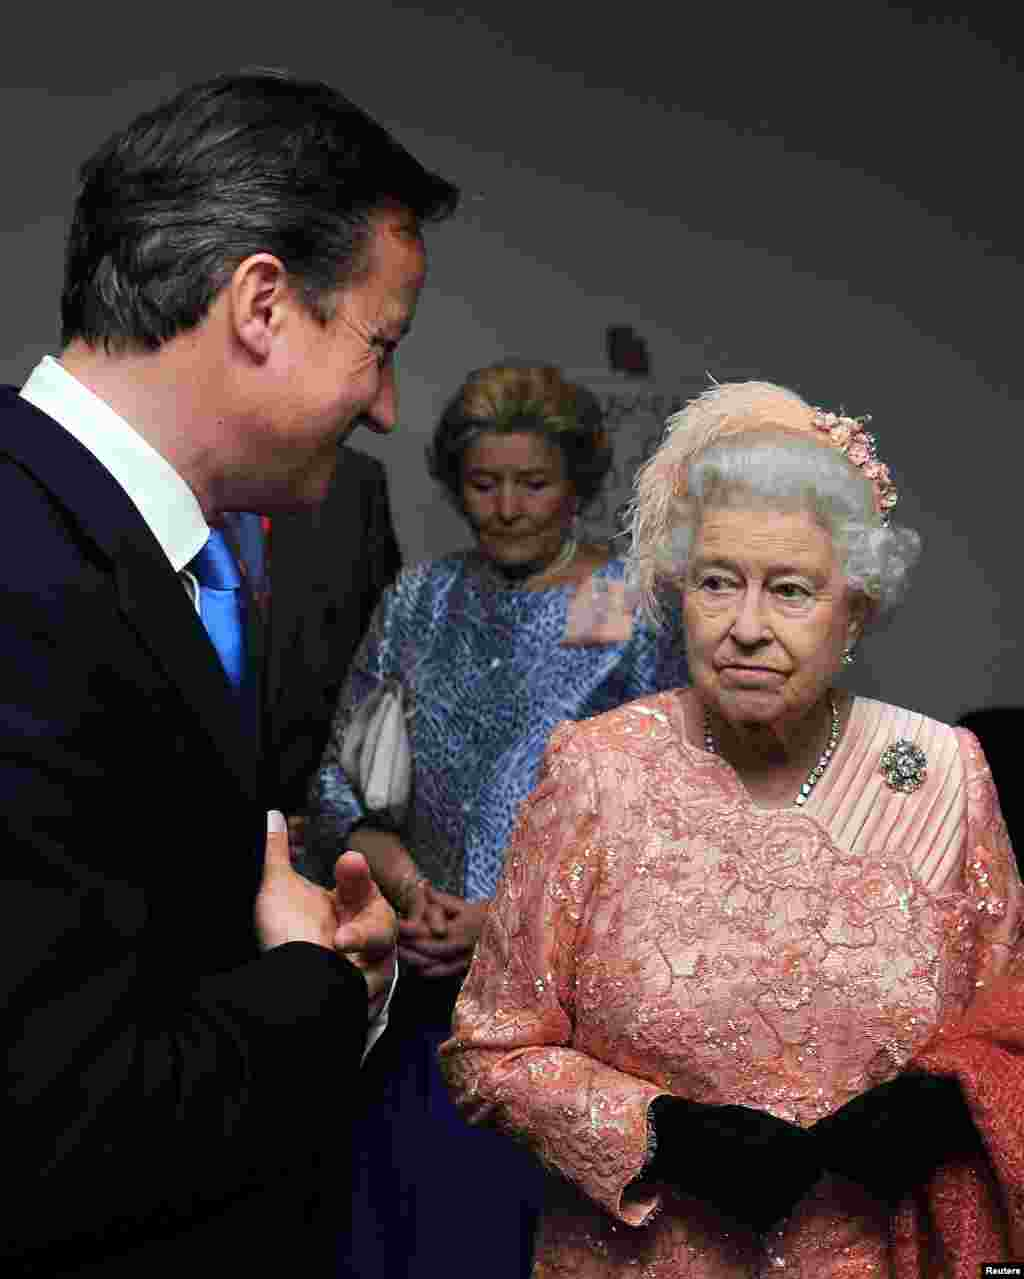 Britain's Queen Elizabeth (R) speaks to Prime Minister David Cameron as she arrives for the opening ceremony of the London 2012 Olympic Games at the Olympic Stadium July 27, 2012.